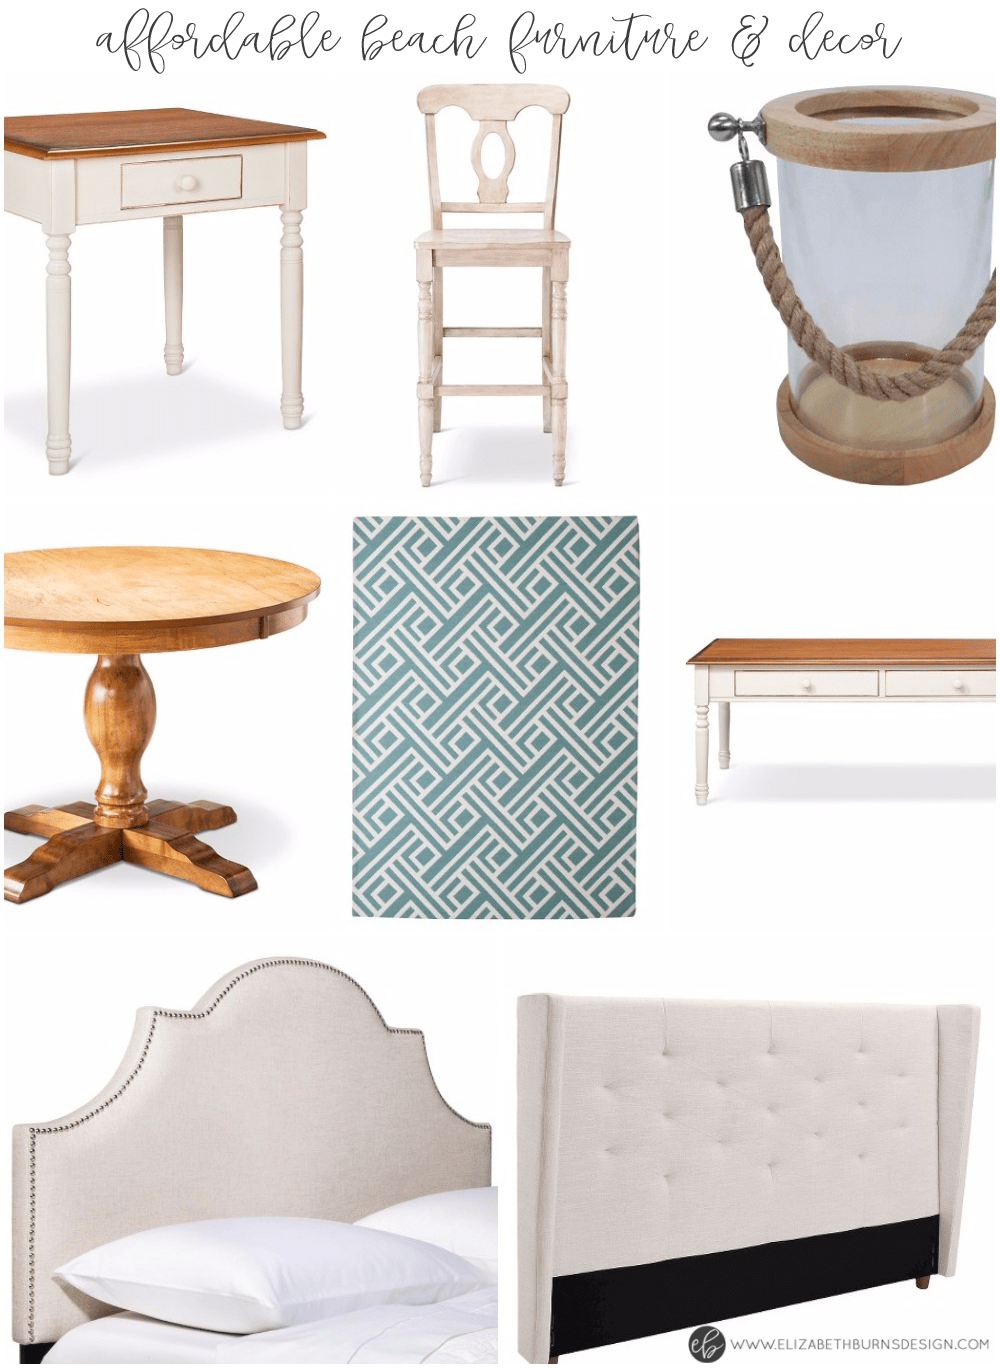 Best Affordable Beach Furniture Decor At Target — Elizabeth This Month